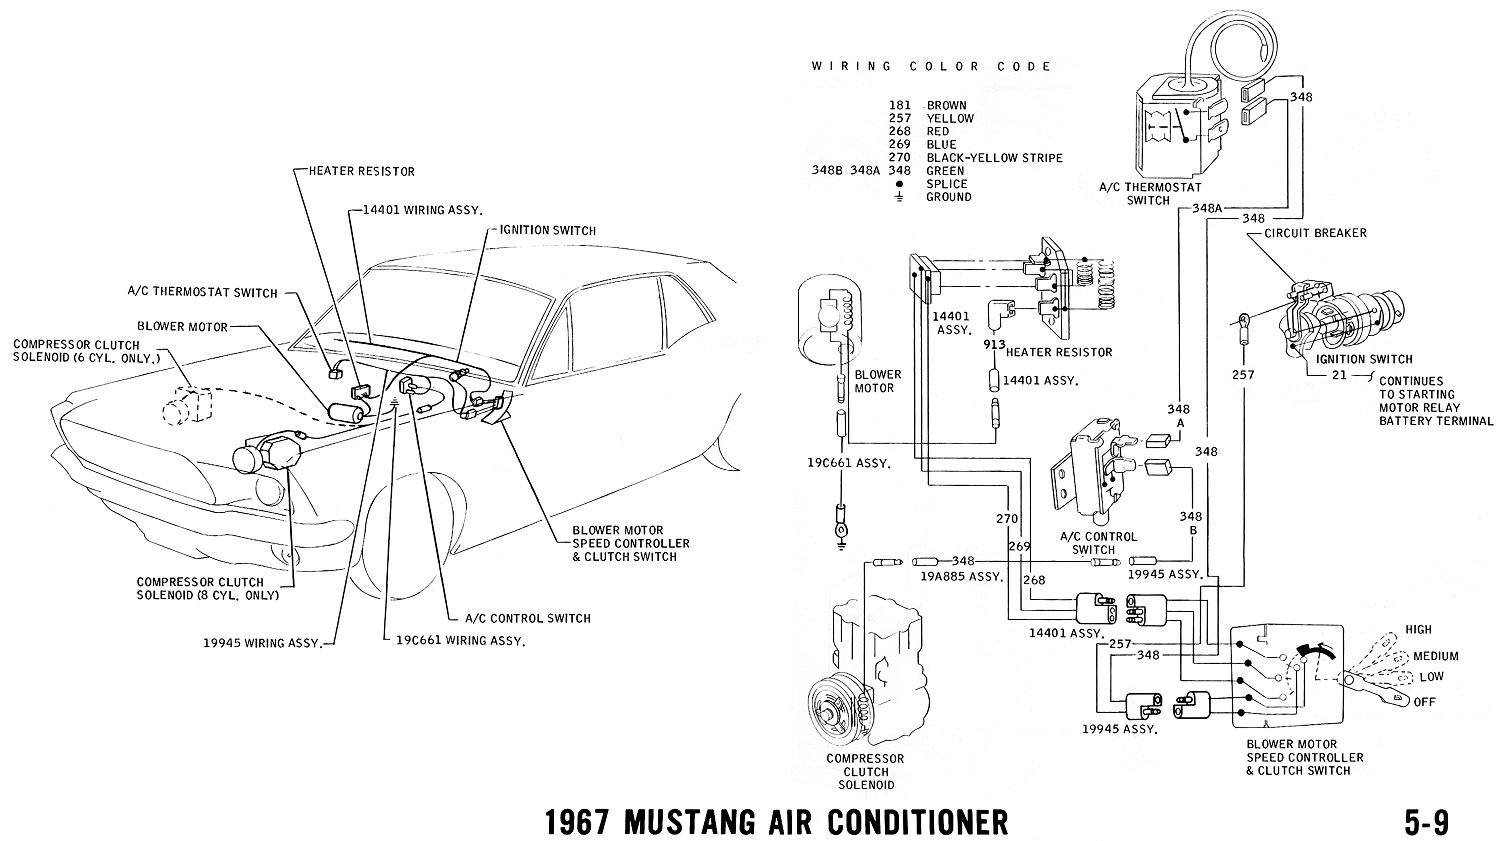 2011 Mustang Air Conditioning Wiring Diagram Free Ruud Schematic 1967 And Vacuum Diagrams Average Joe Restoration Rh Averagejoerestoration Com Compressor